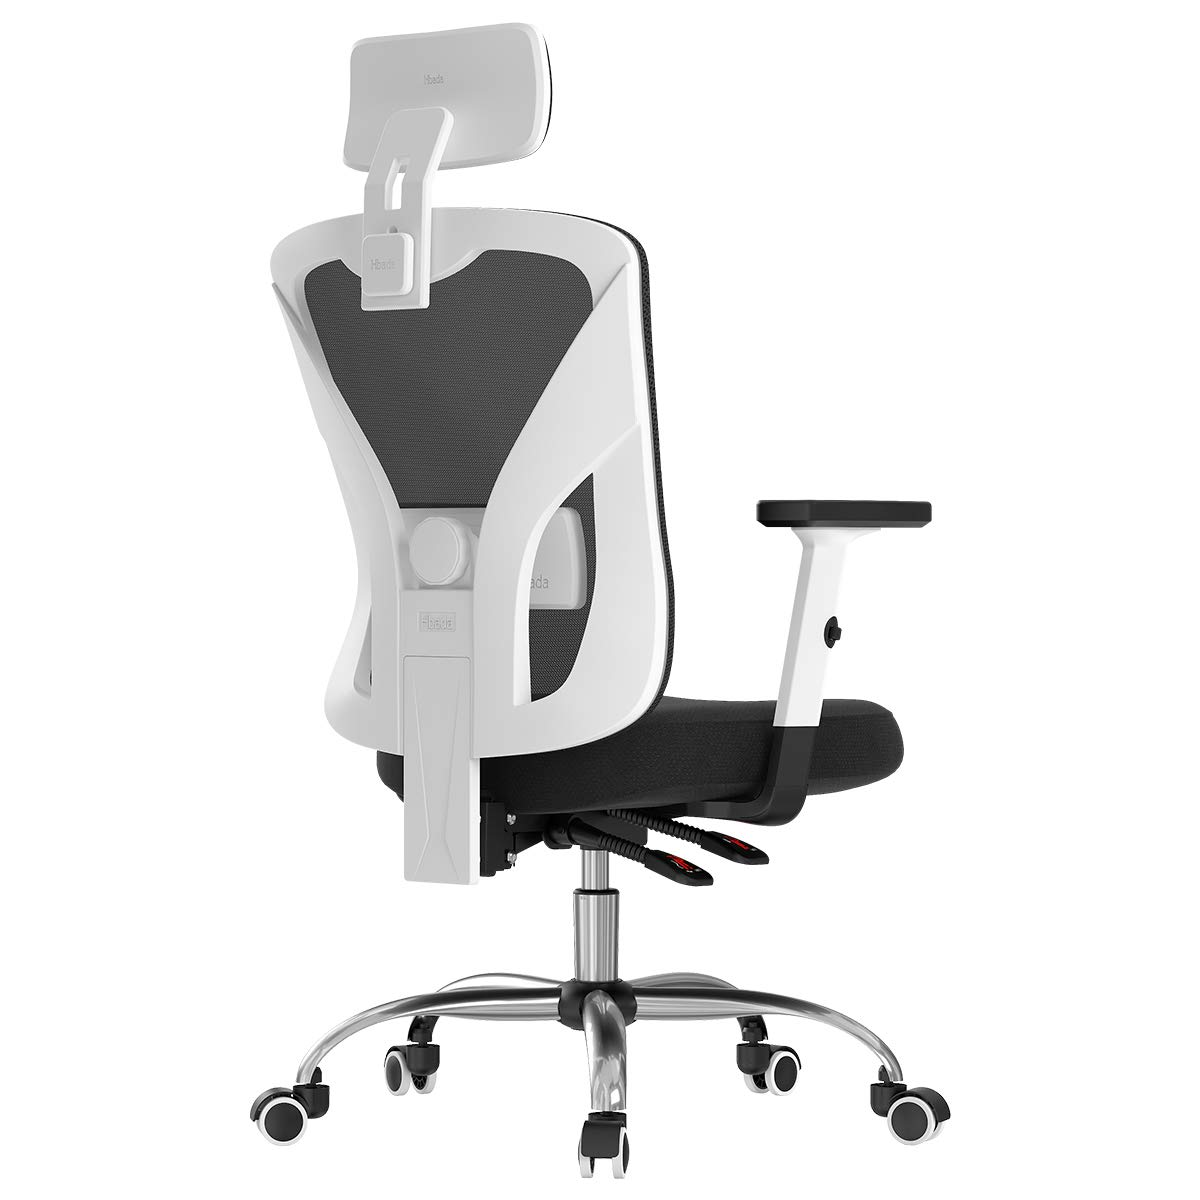 Hbada Ergonomic Office Desk Chair With Adjustable Armrest Lumbar Support Headrest And Breathable Skin Friendly Mesh White Buy Online In Lithuania At Lithuania Desertcart Com Productid 57403245